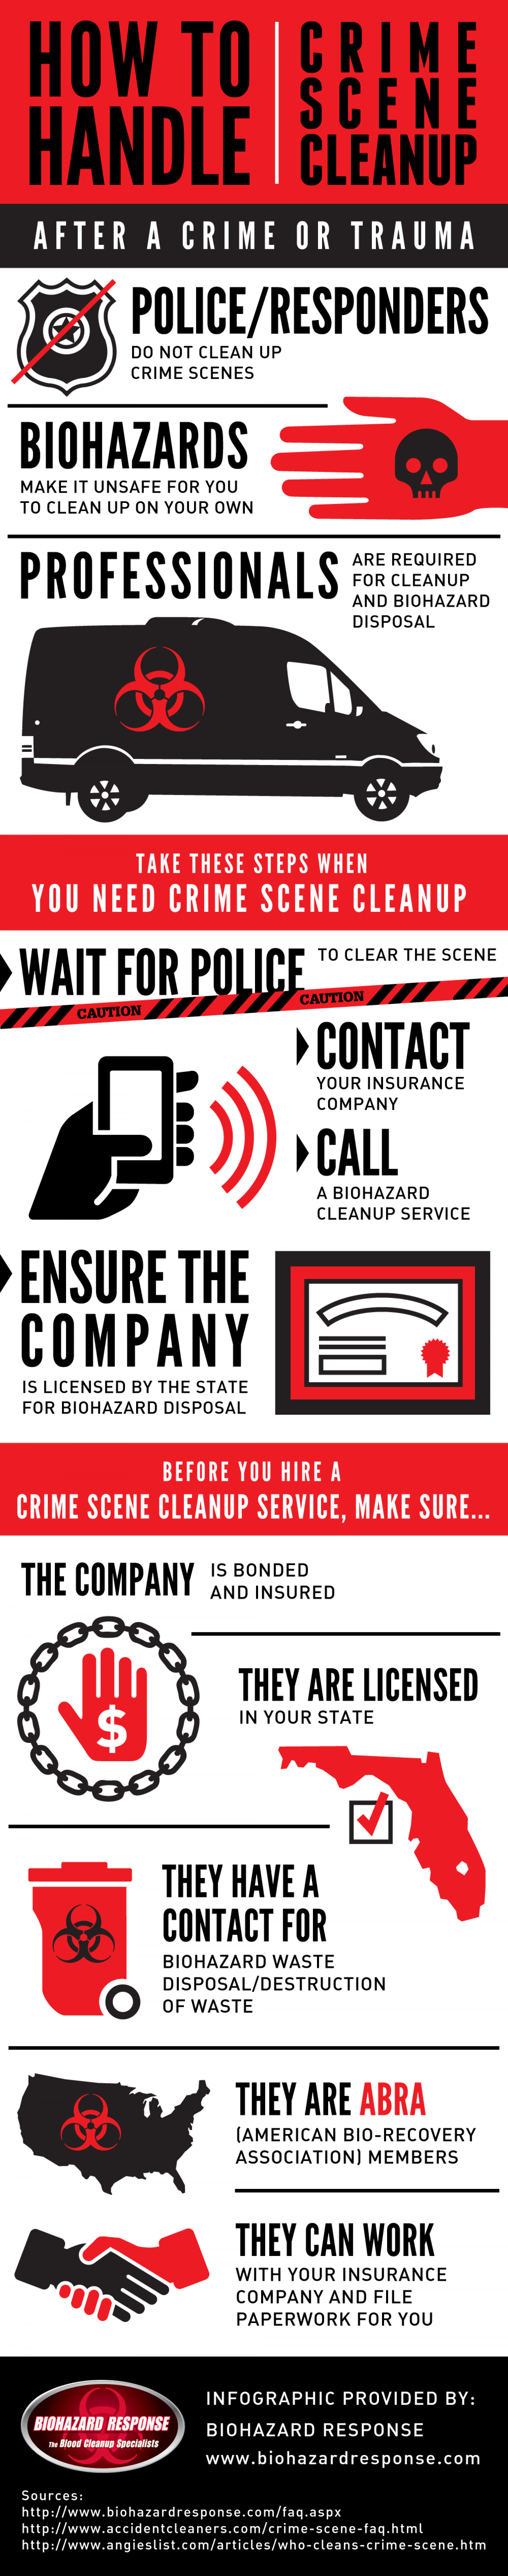 How to Handle Crime Scene Cleanup Infographic